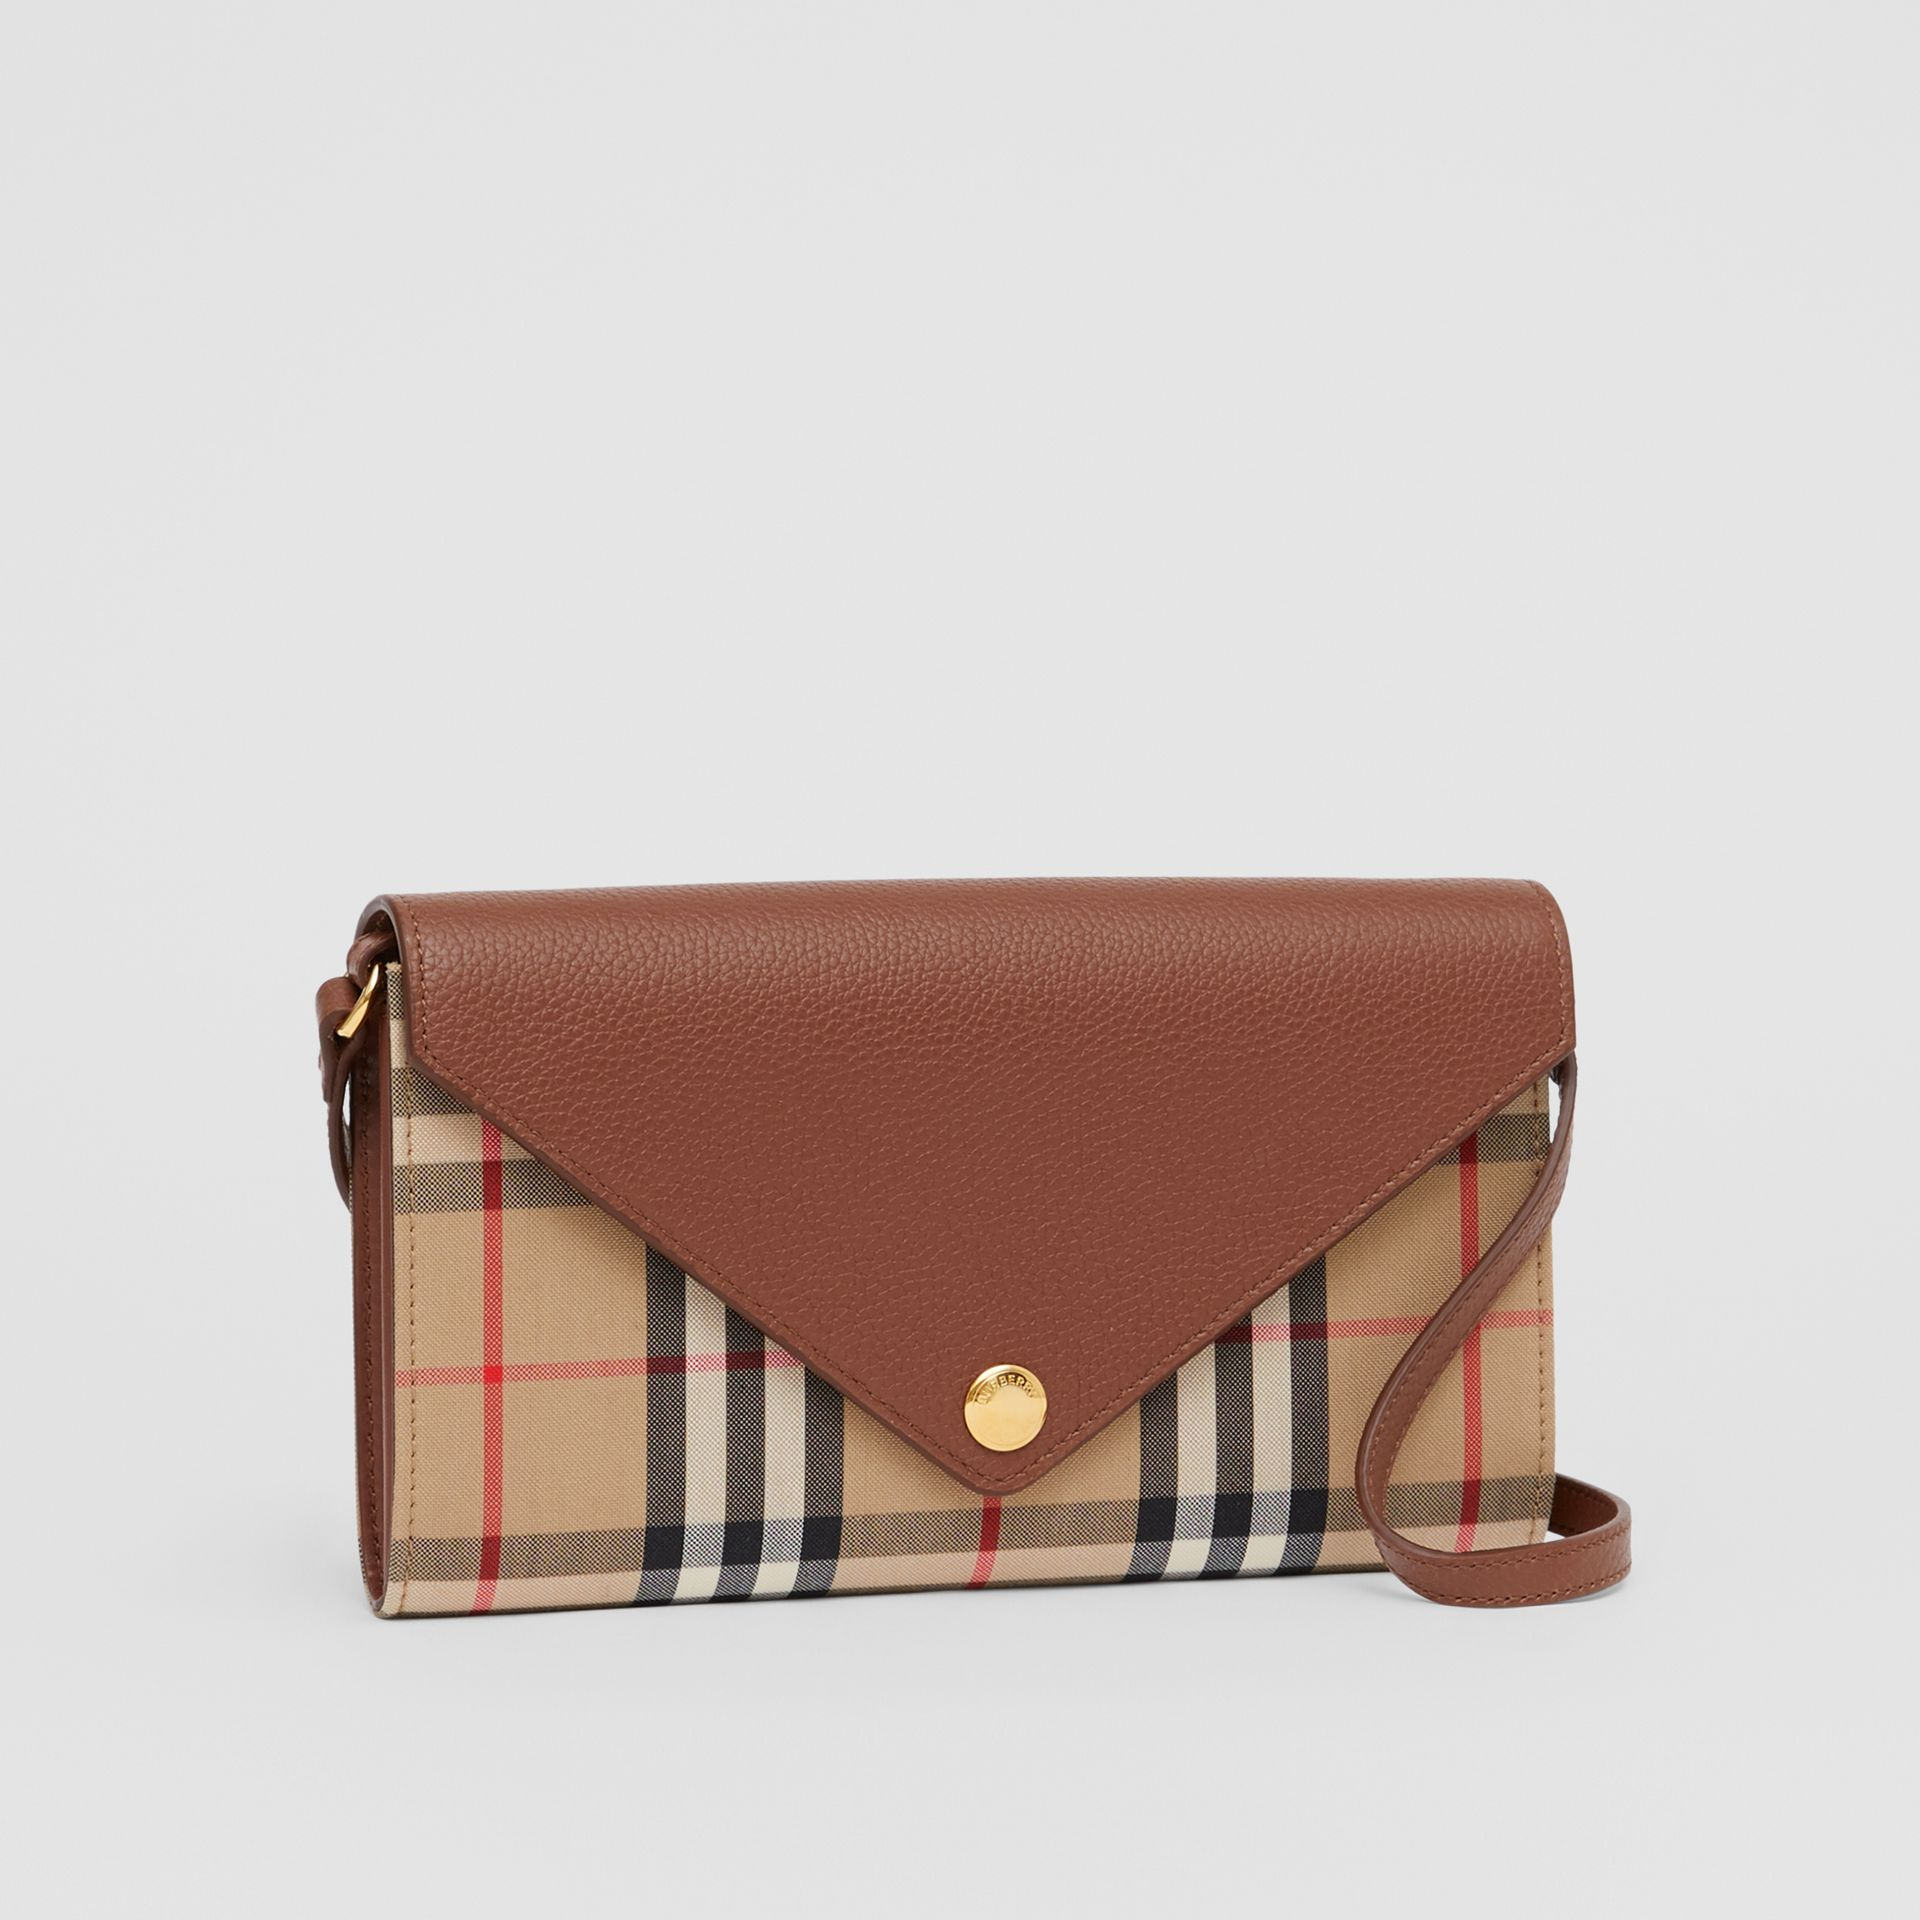 Vintage Check and Leather Wallet with Detachable Strap in Tan - Women | Burberry - gallery image 6